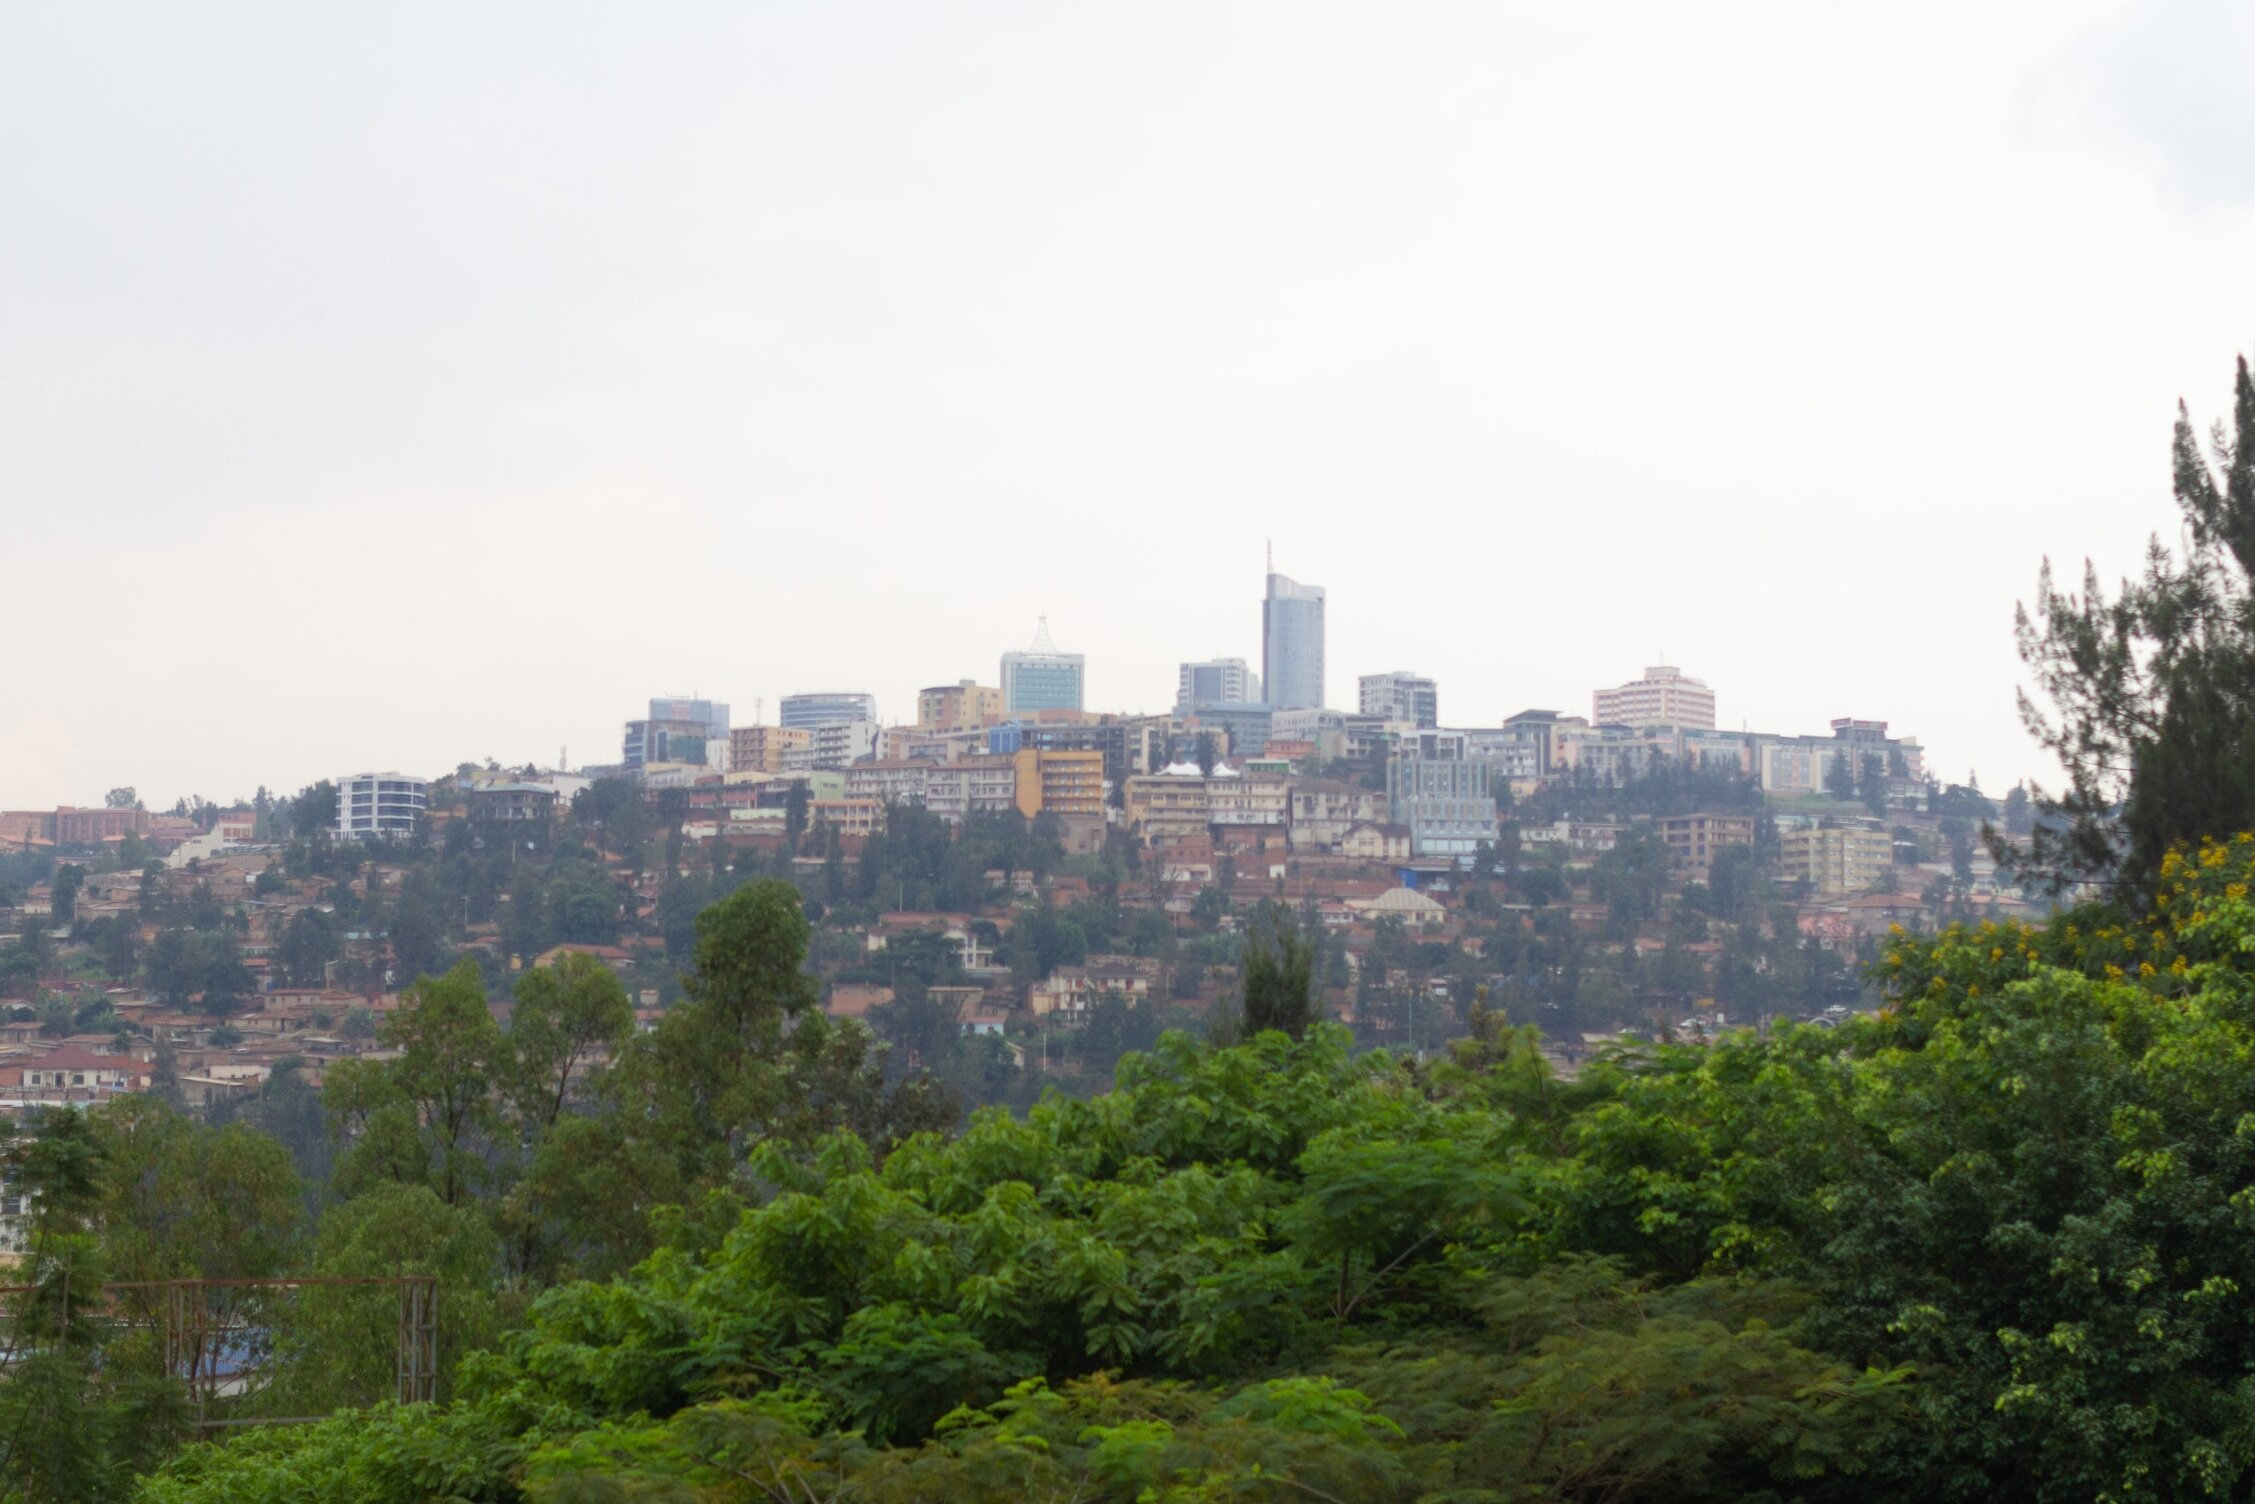 FACT 3: Rwanda has a population densityhigher than England - As of 2017, Rwanda is home to 12 million people spread over 10,000 square miles. That's roughly 1,200 people per square mile versus 1,000 people in England (one of the most densely-populated European nations). Rwanda also beats every US state when it comes to population density.